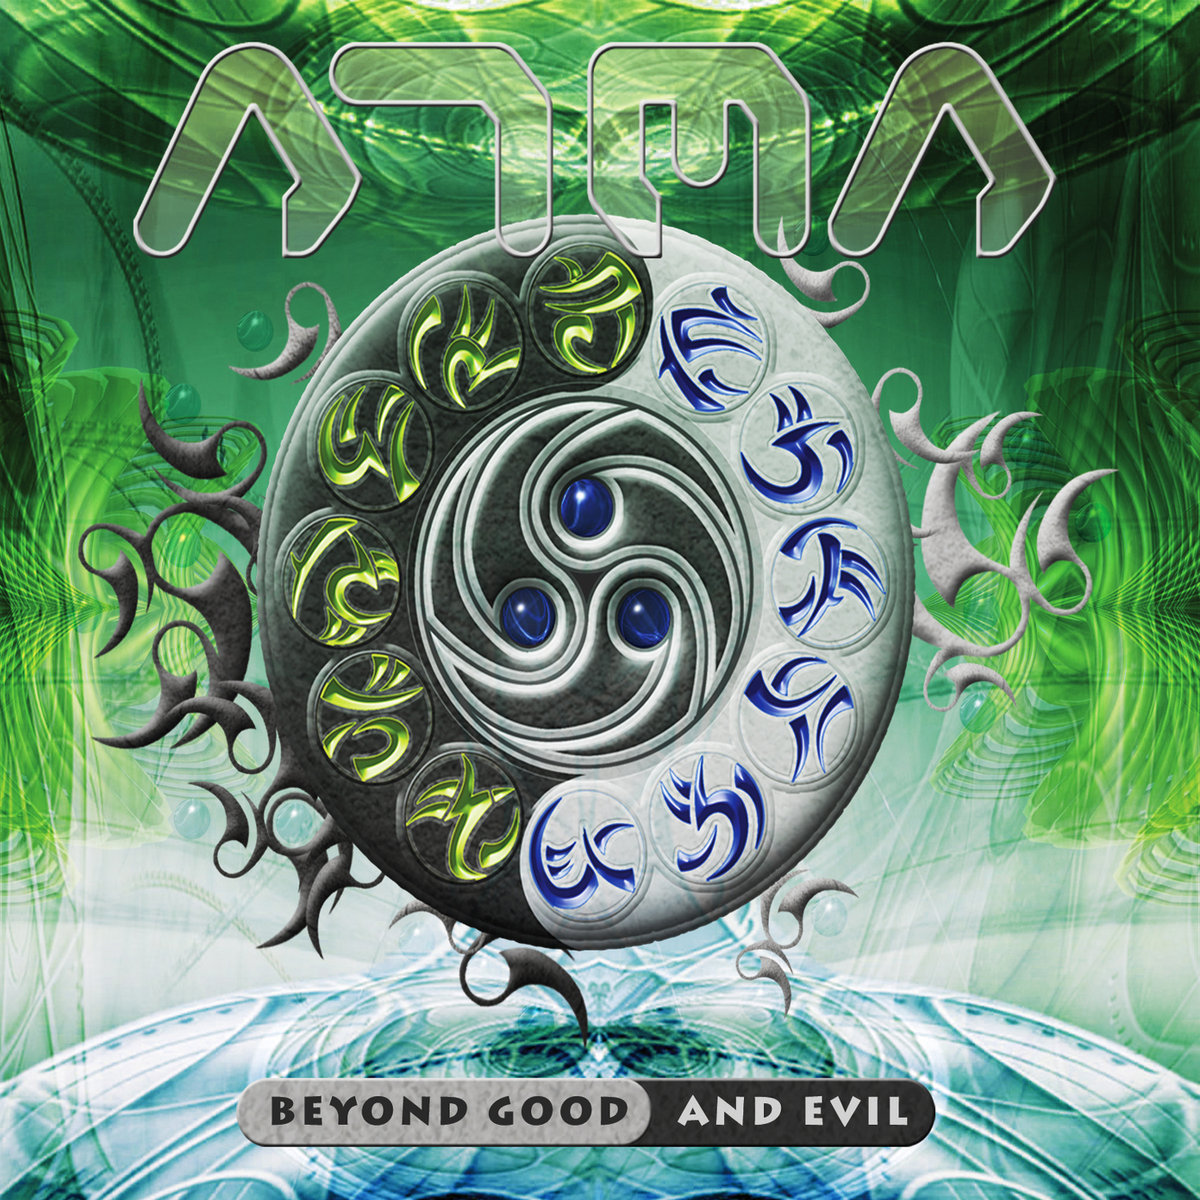 Atma - Distorted Reality @ 'Beyond Good and Evil' album (electronic, goa)